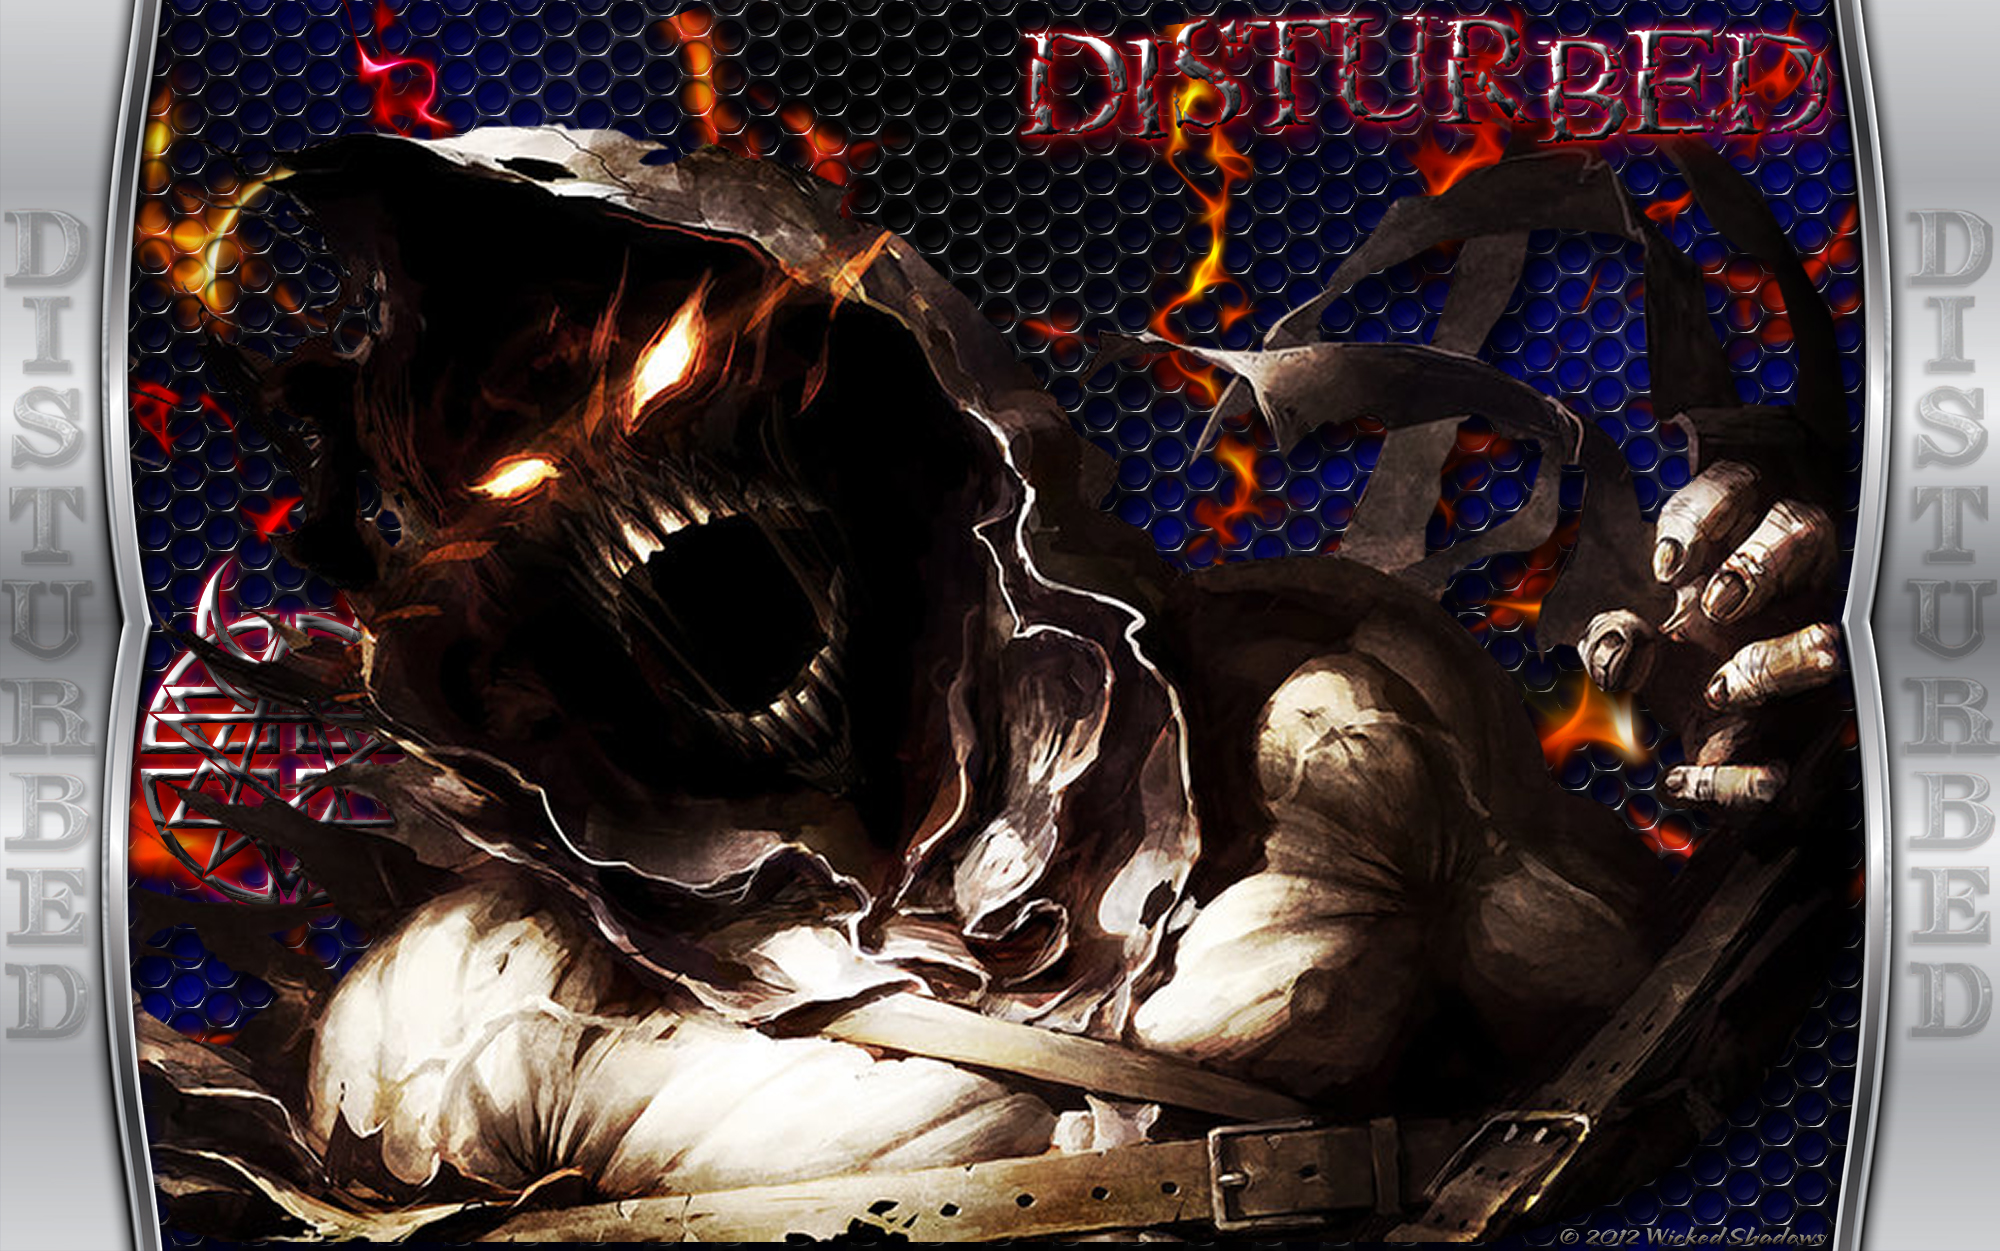 Wallpapers By Wicked Shadows Disturbed Heavy Metal Wallpaper